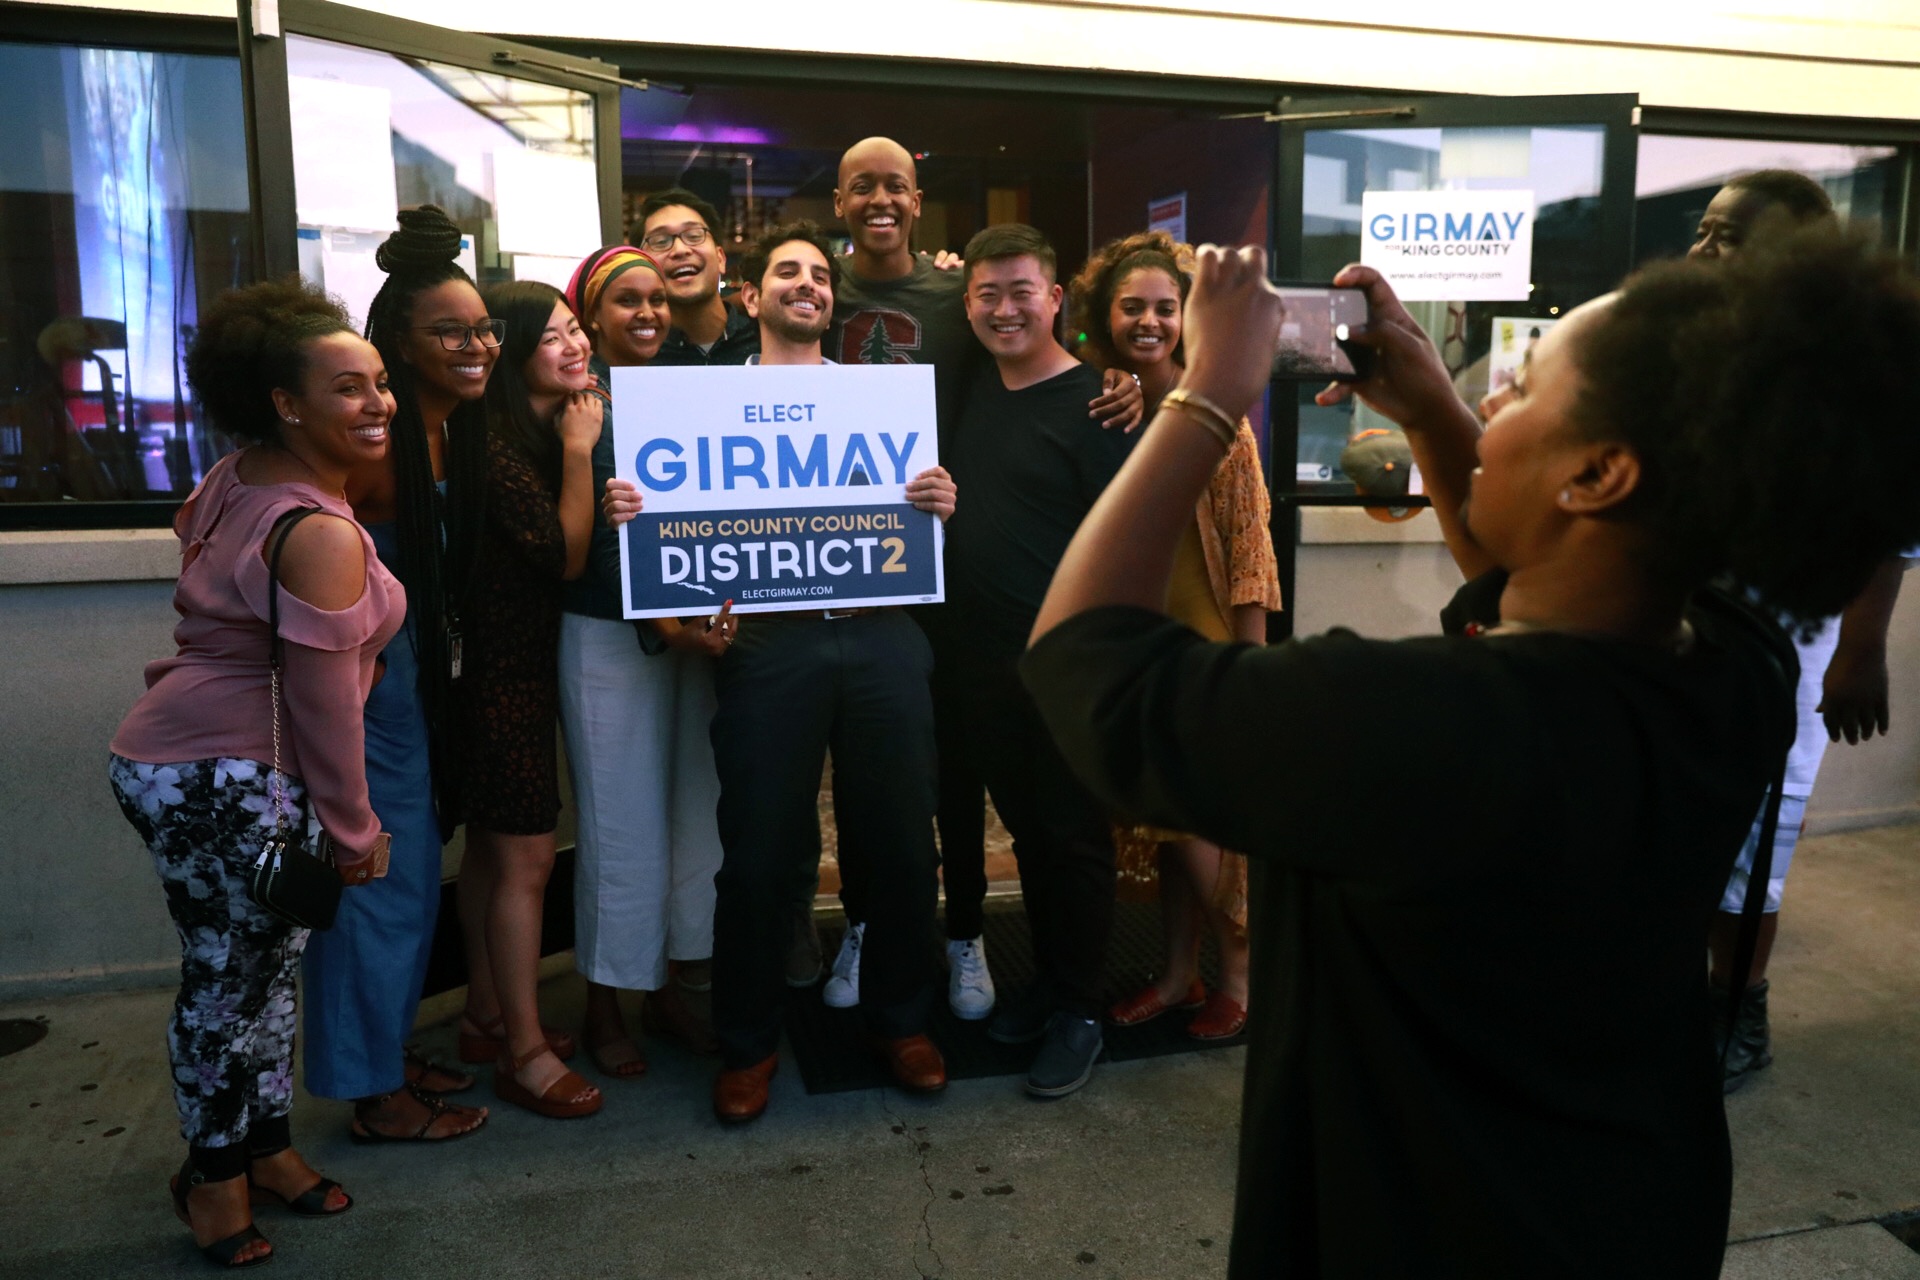 Girmay Zahilay poses with supporters.